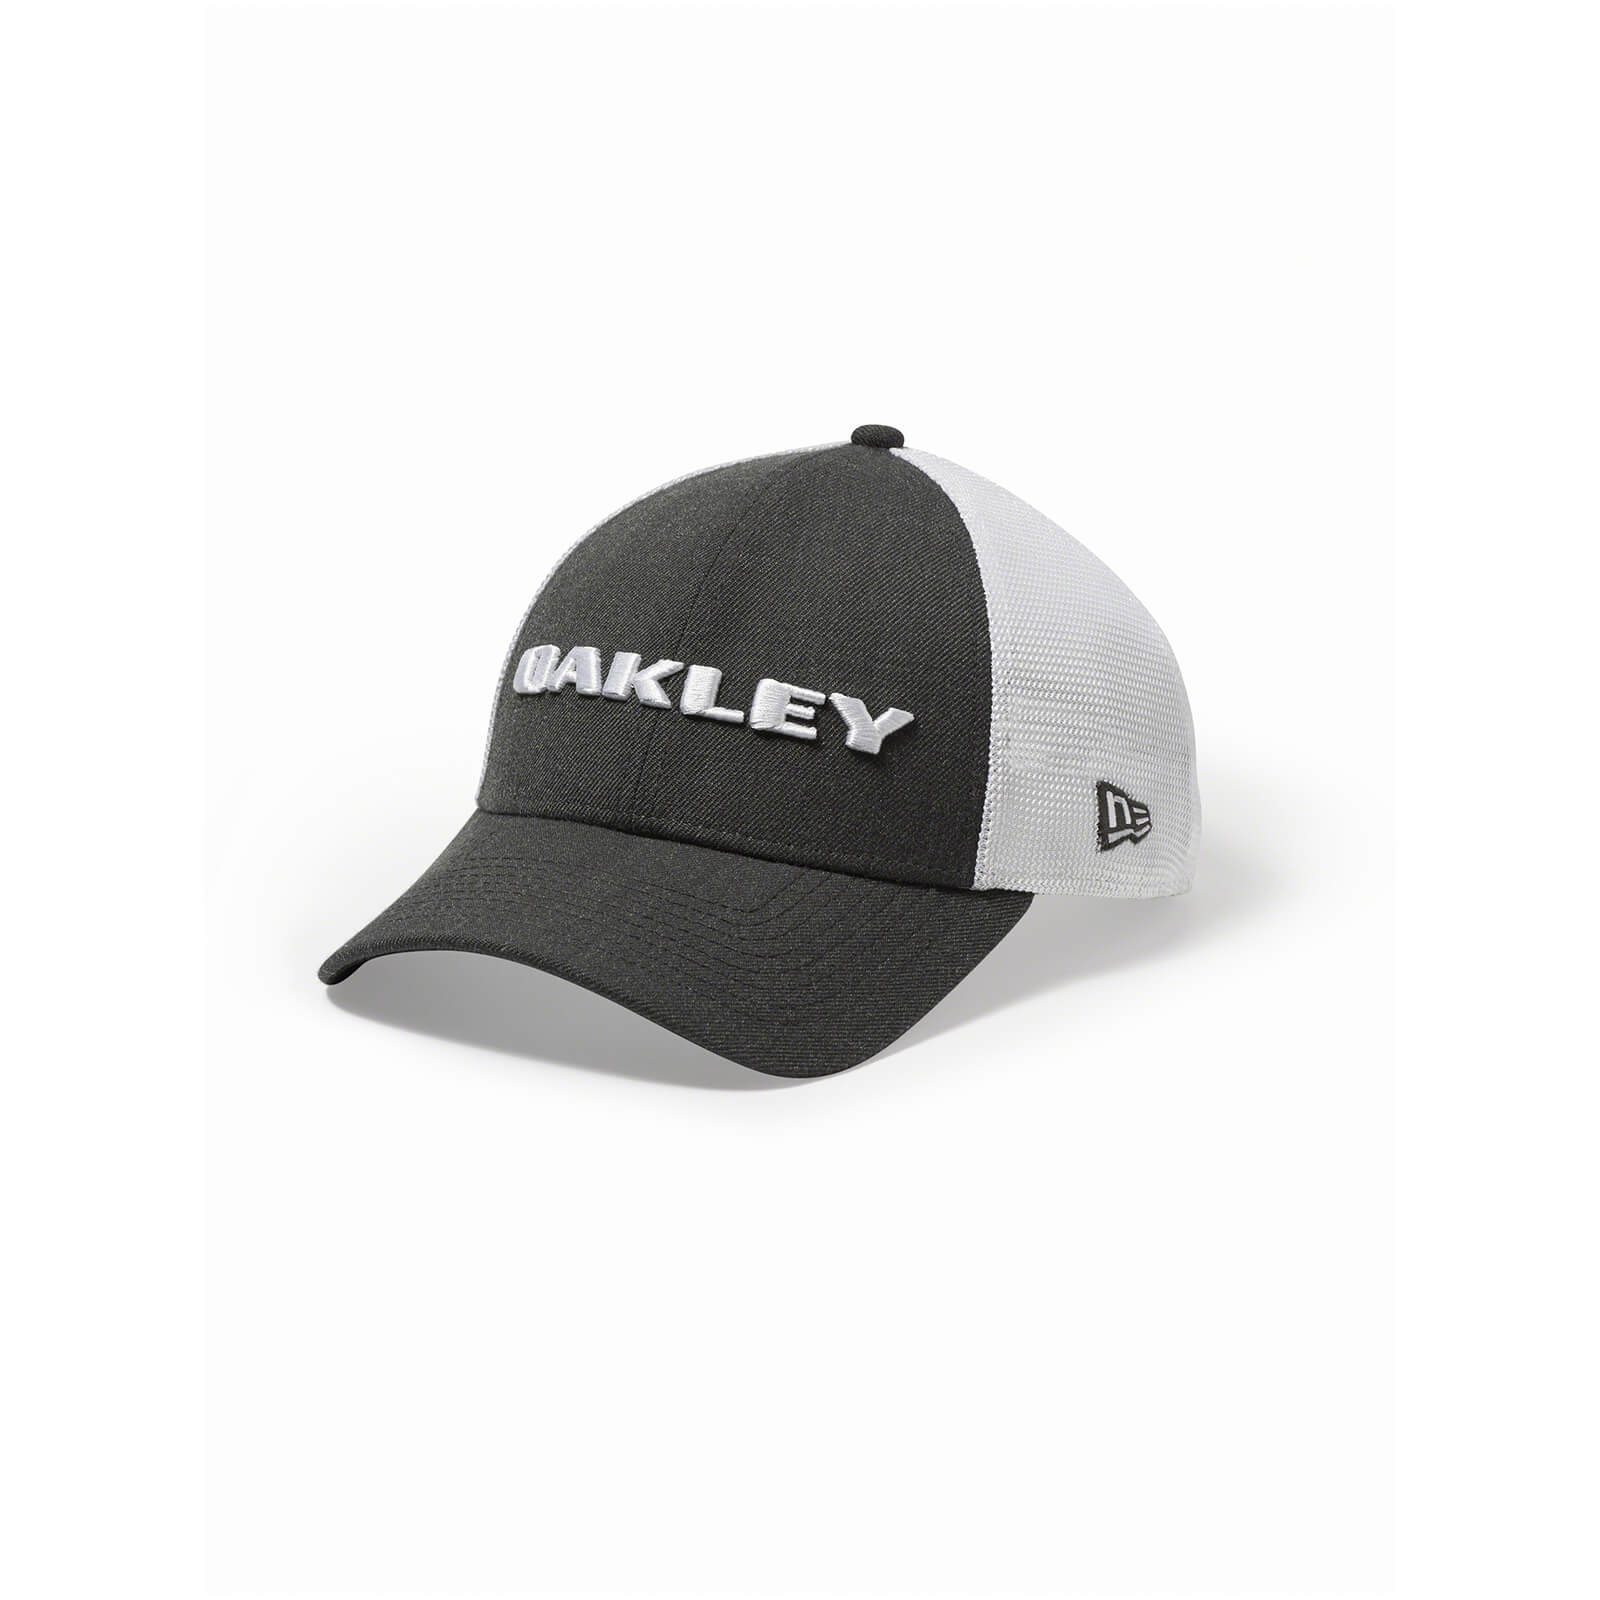 Oakley Heather New Era Cap - Grey